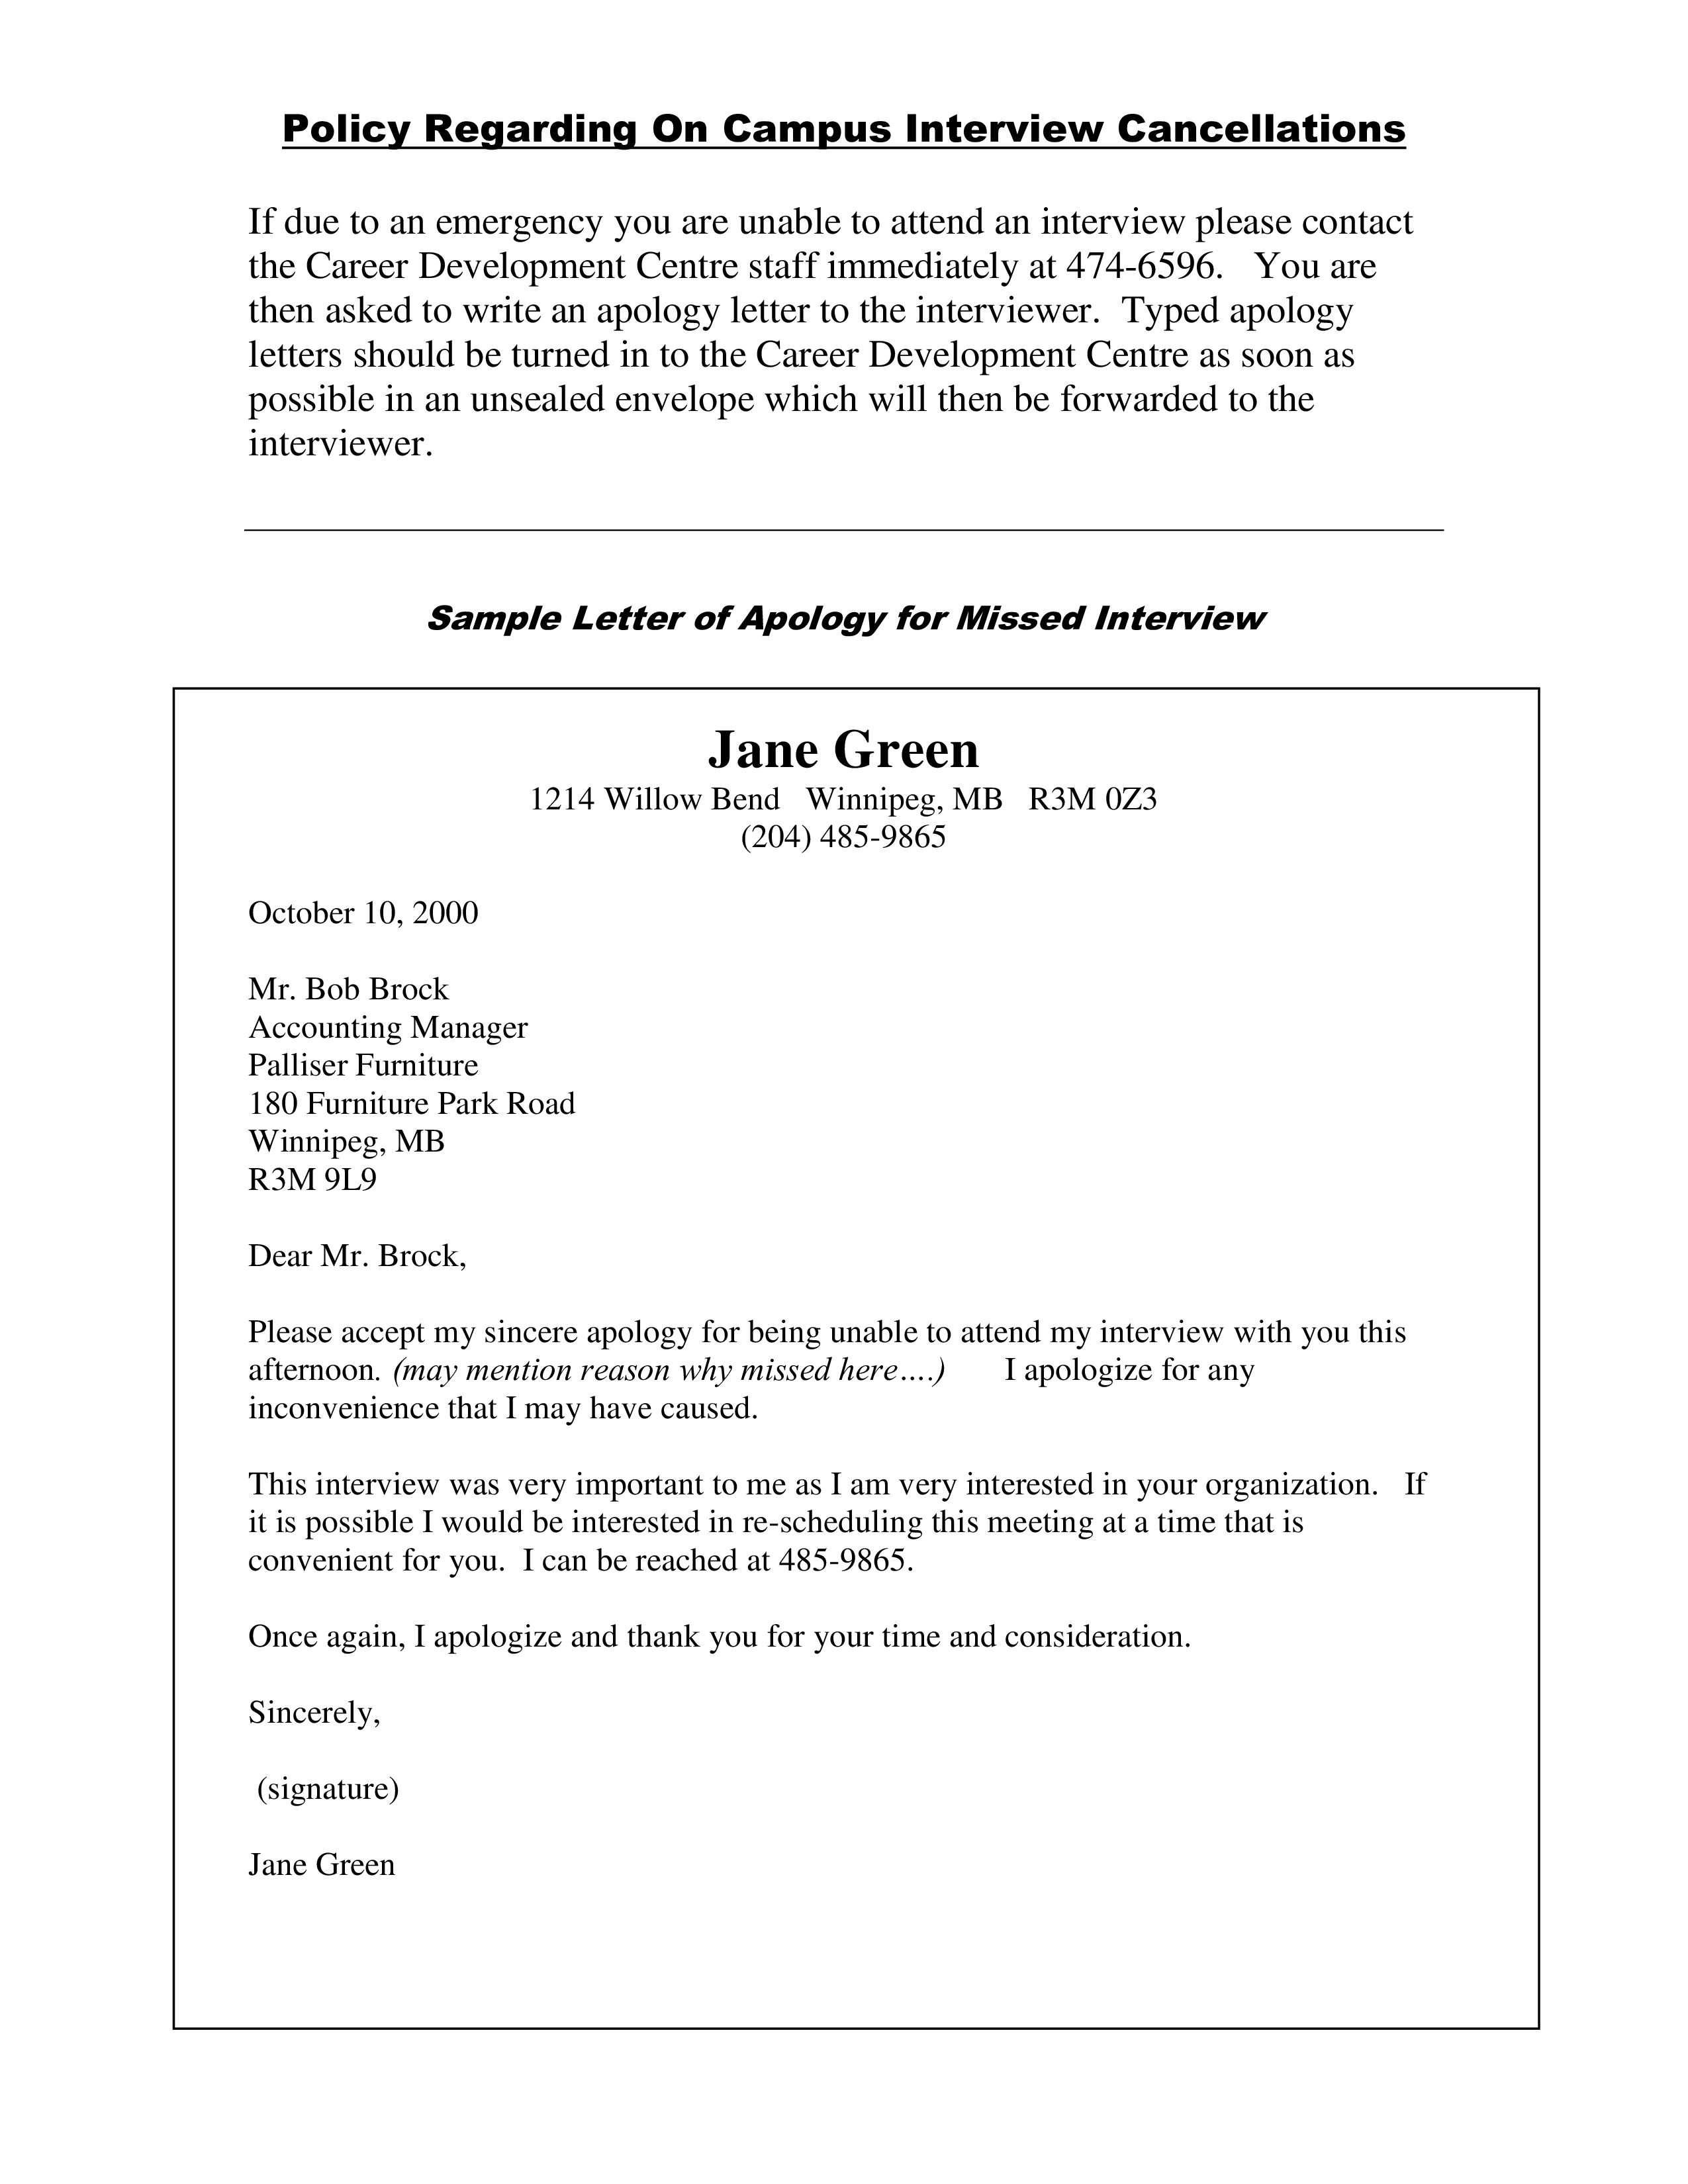 Professional apology letter how to write a professional apology professional apology letter how to write a professional apology letter download this professional apology expocarfo Gallery